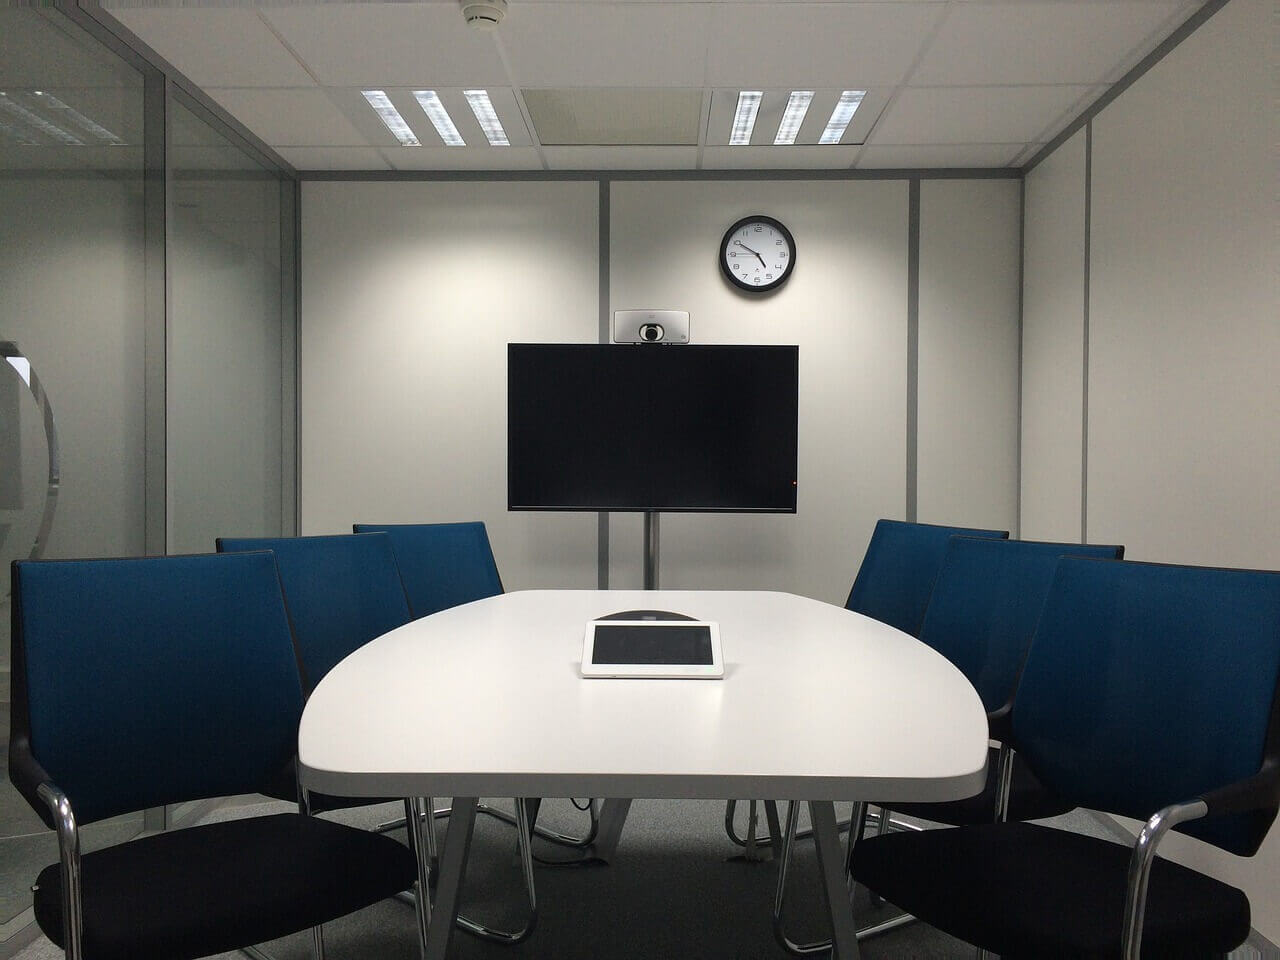 Video Conferencing Etiquette - Room for Video Conferencing